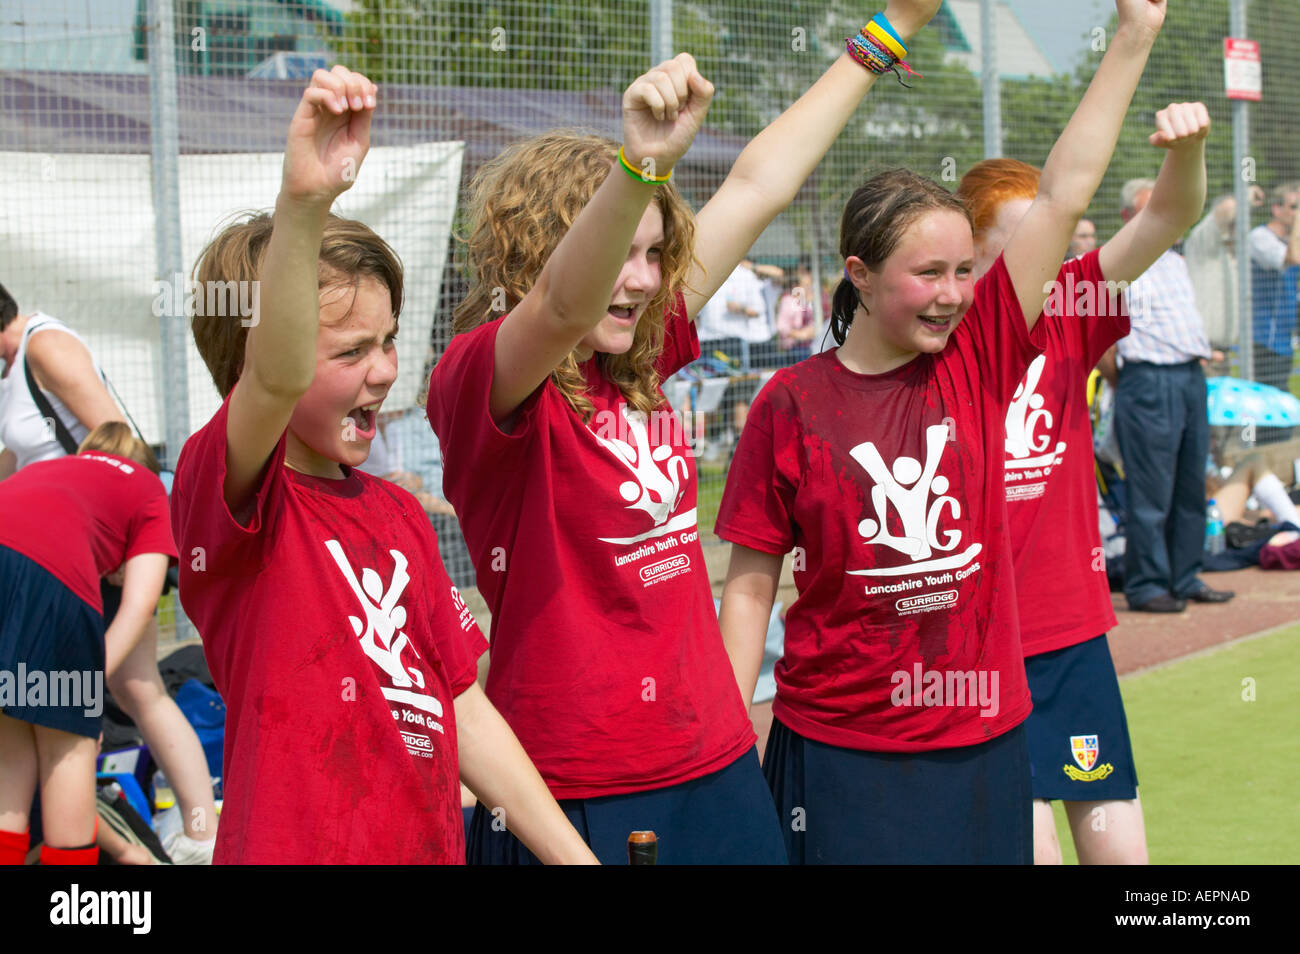 young girls cheering on their team mates at a hockey match - Stock Image